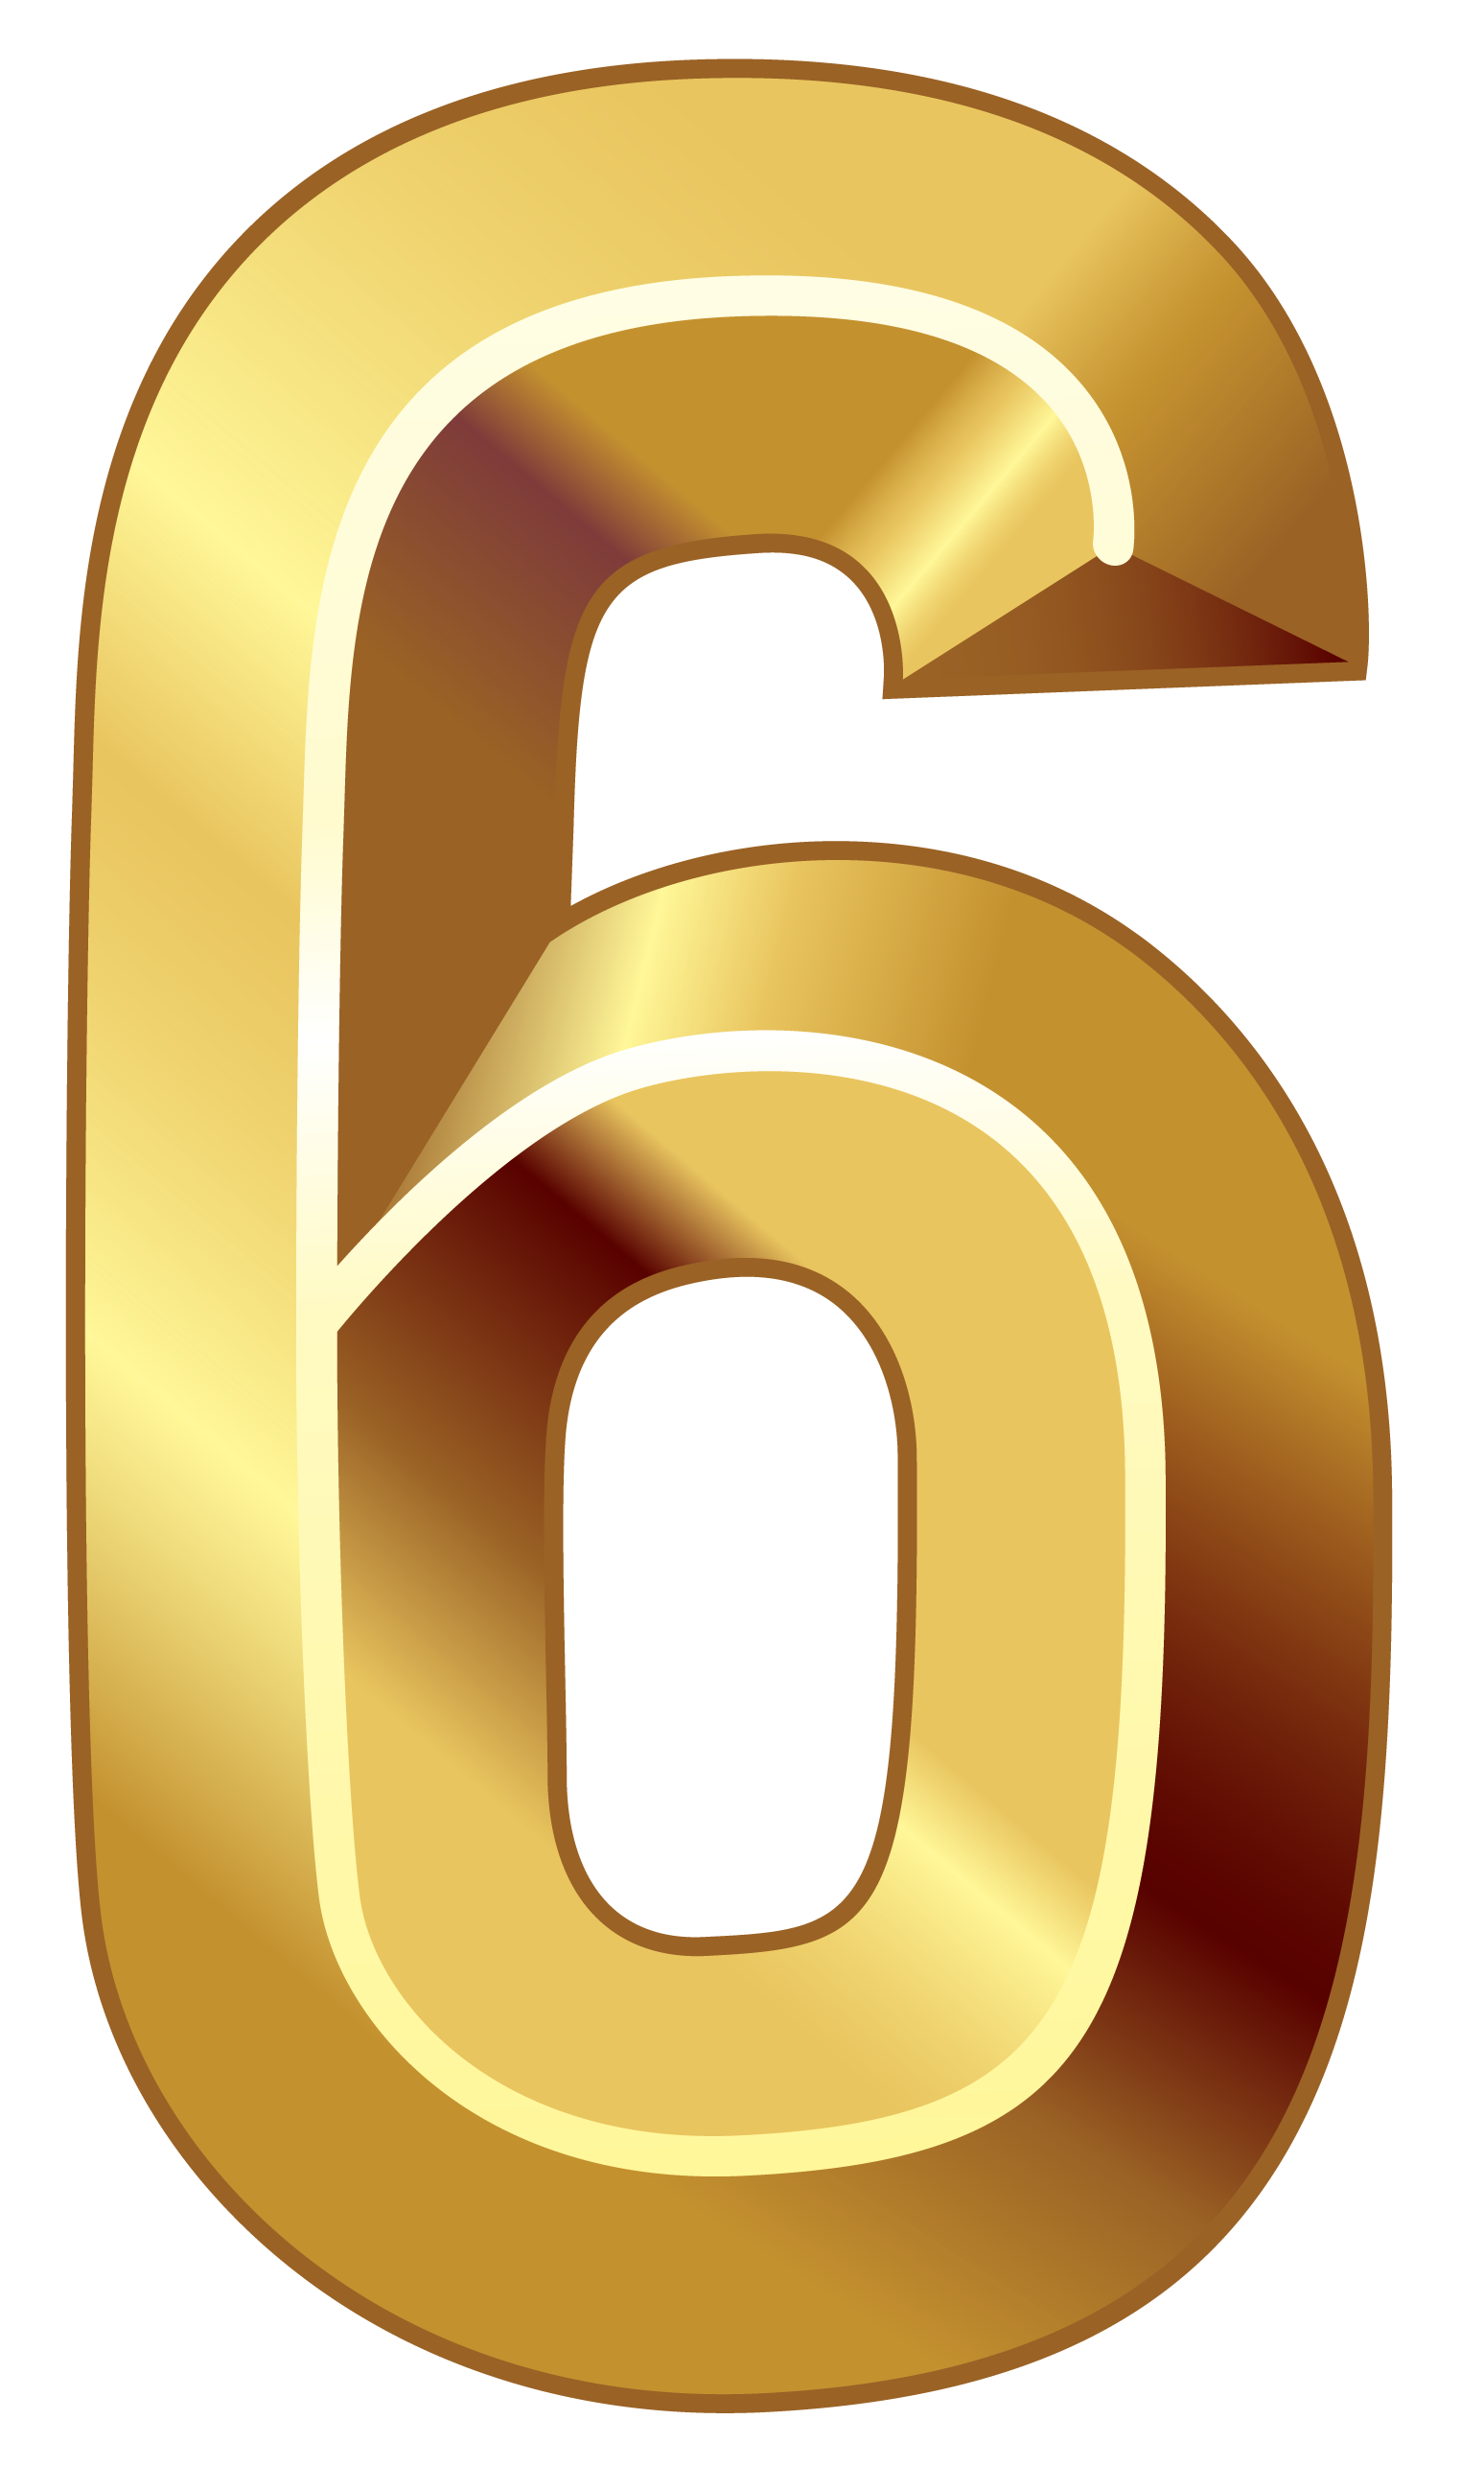 Gold six png image. Number 6 clipart numerical number